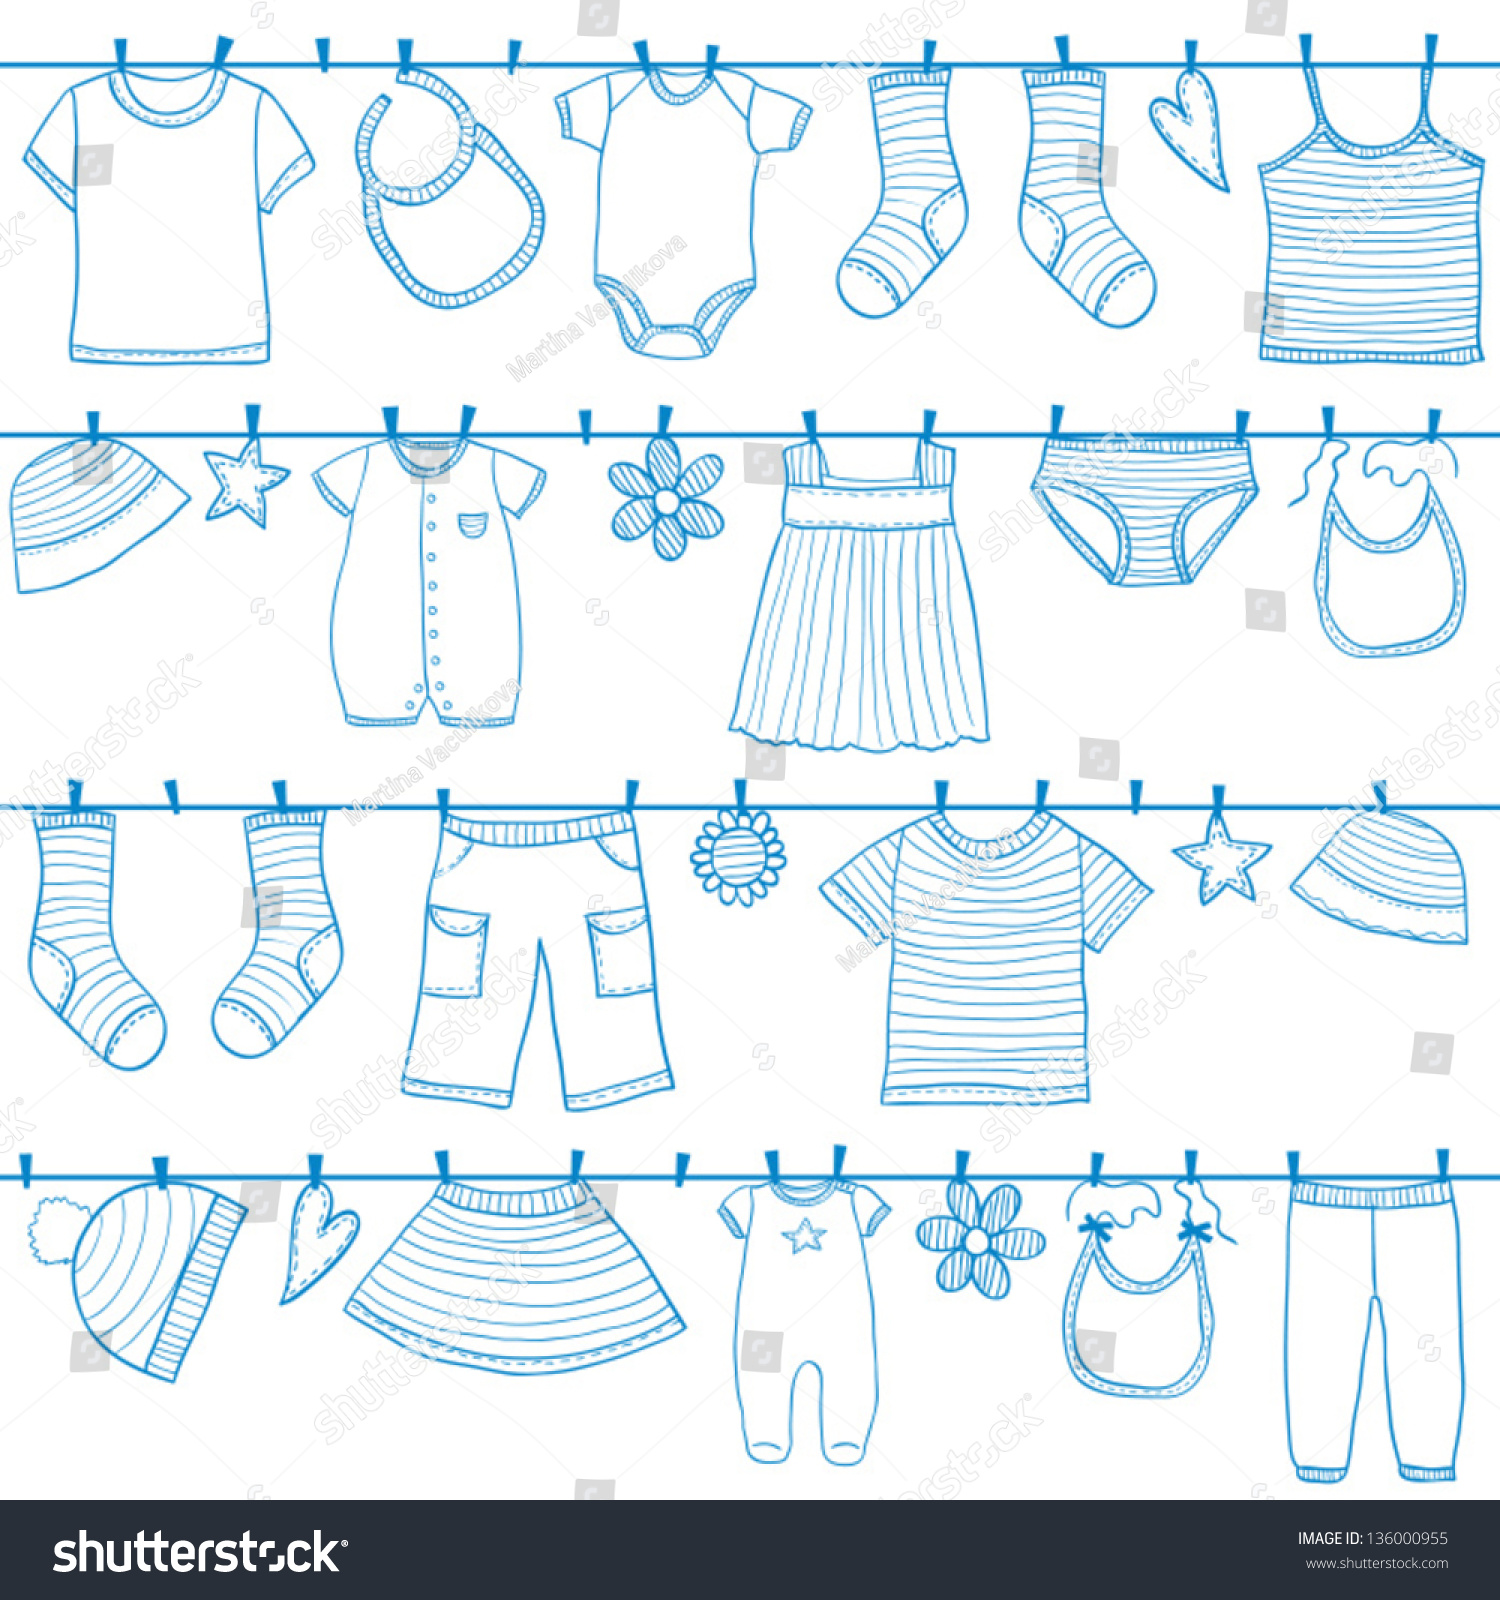 Children Baby Clothes Clothesline Seamless Stock